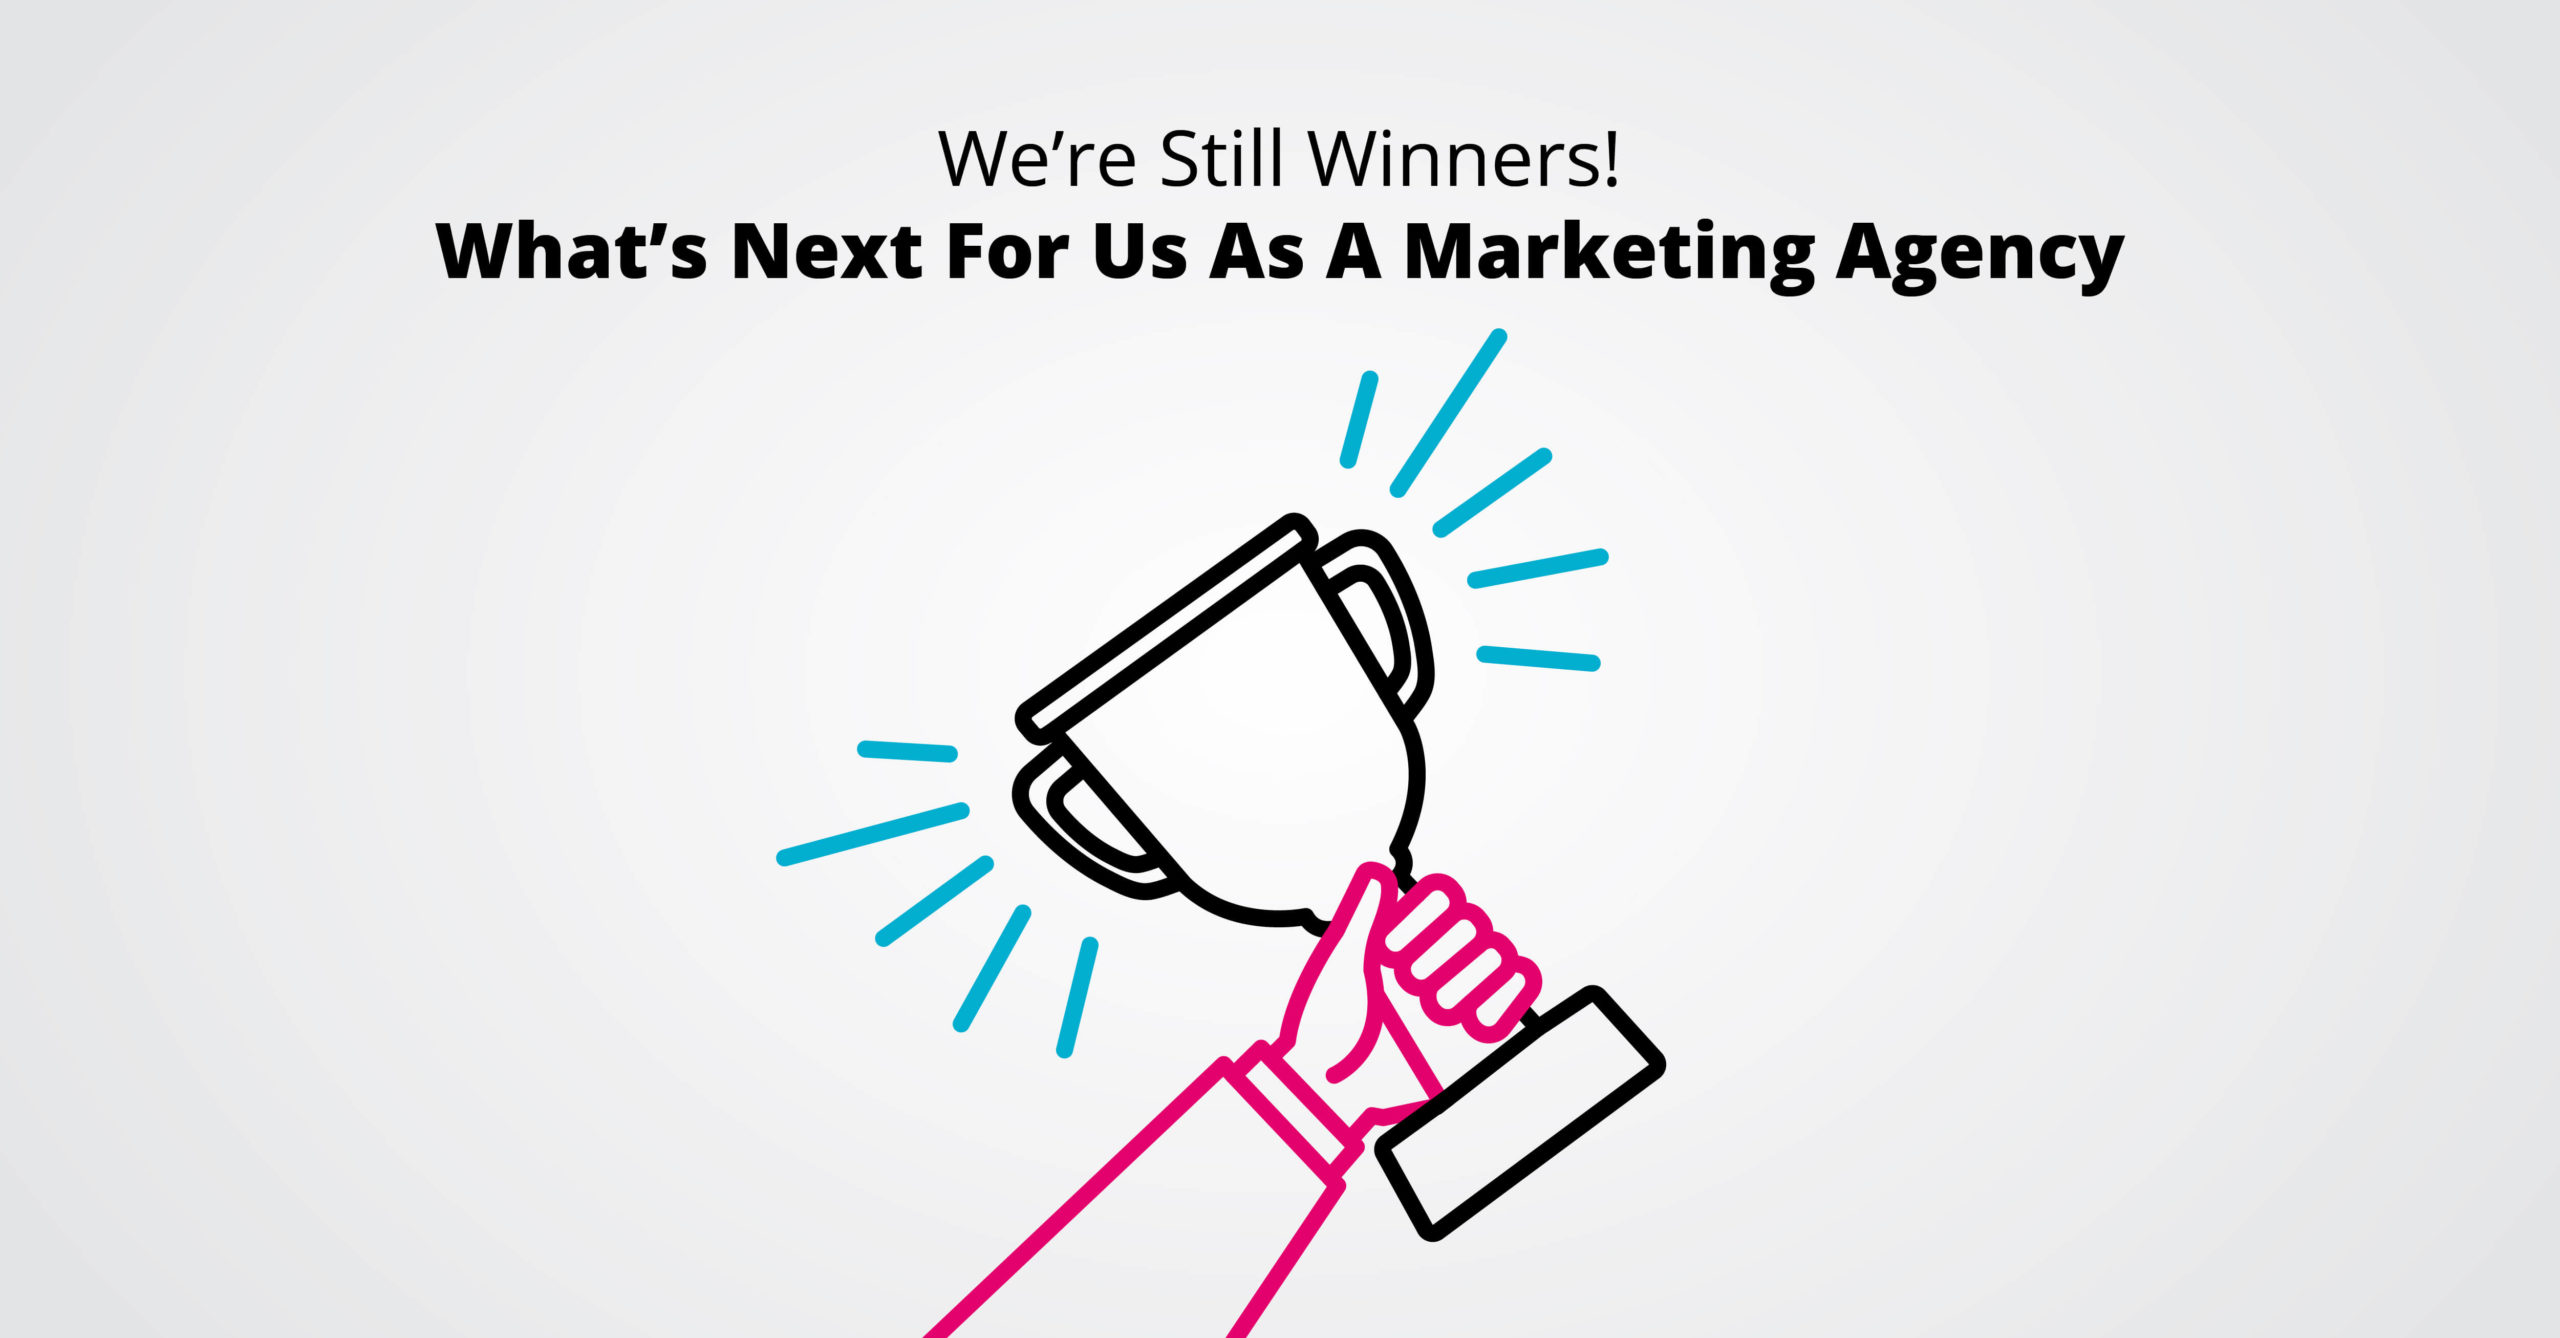 We're Still Winners! What's Next For Us As A Marketing Agency